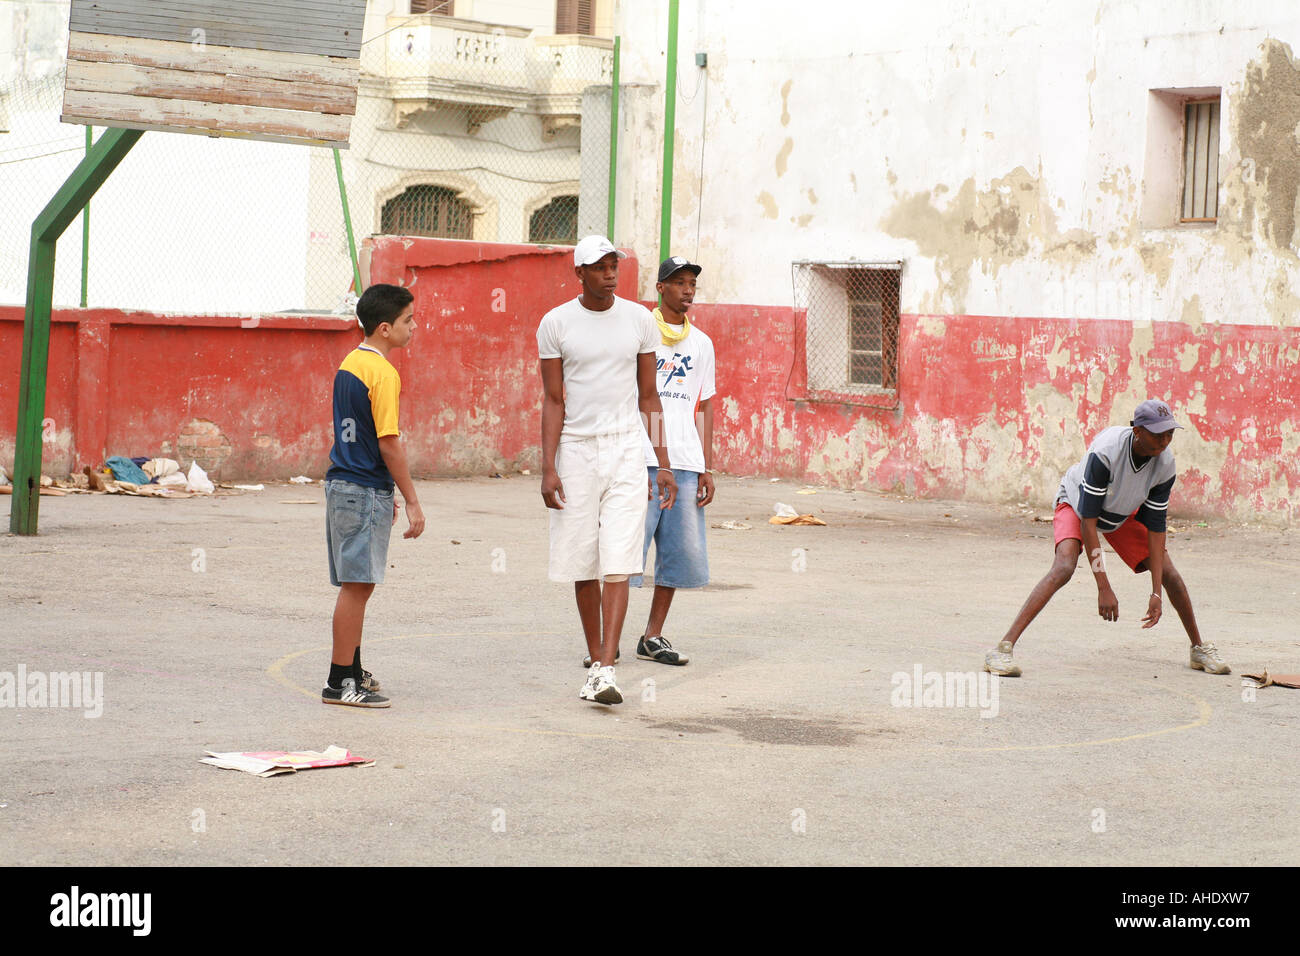 la habana cuba boys playing soccer in a backyard stock photo